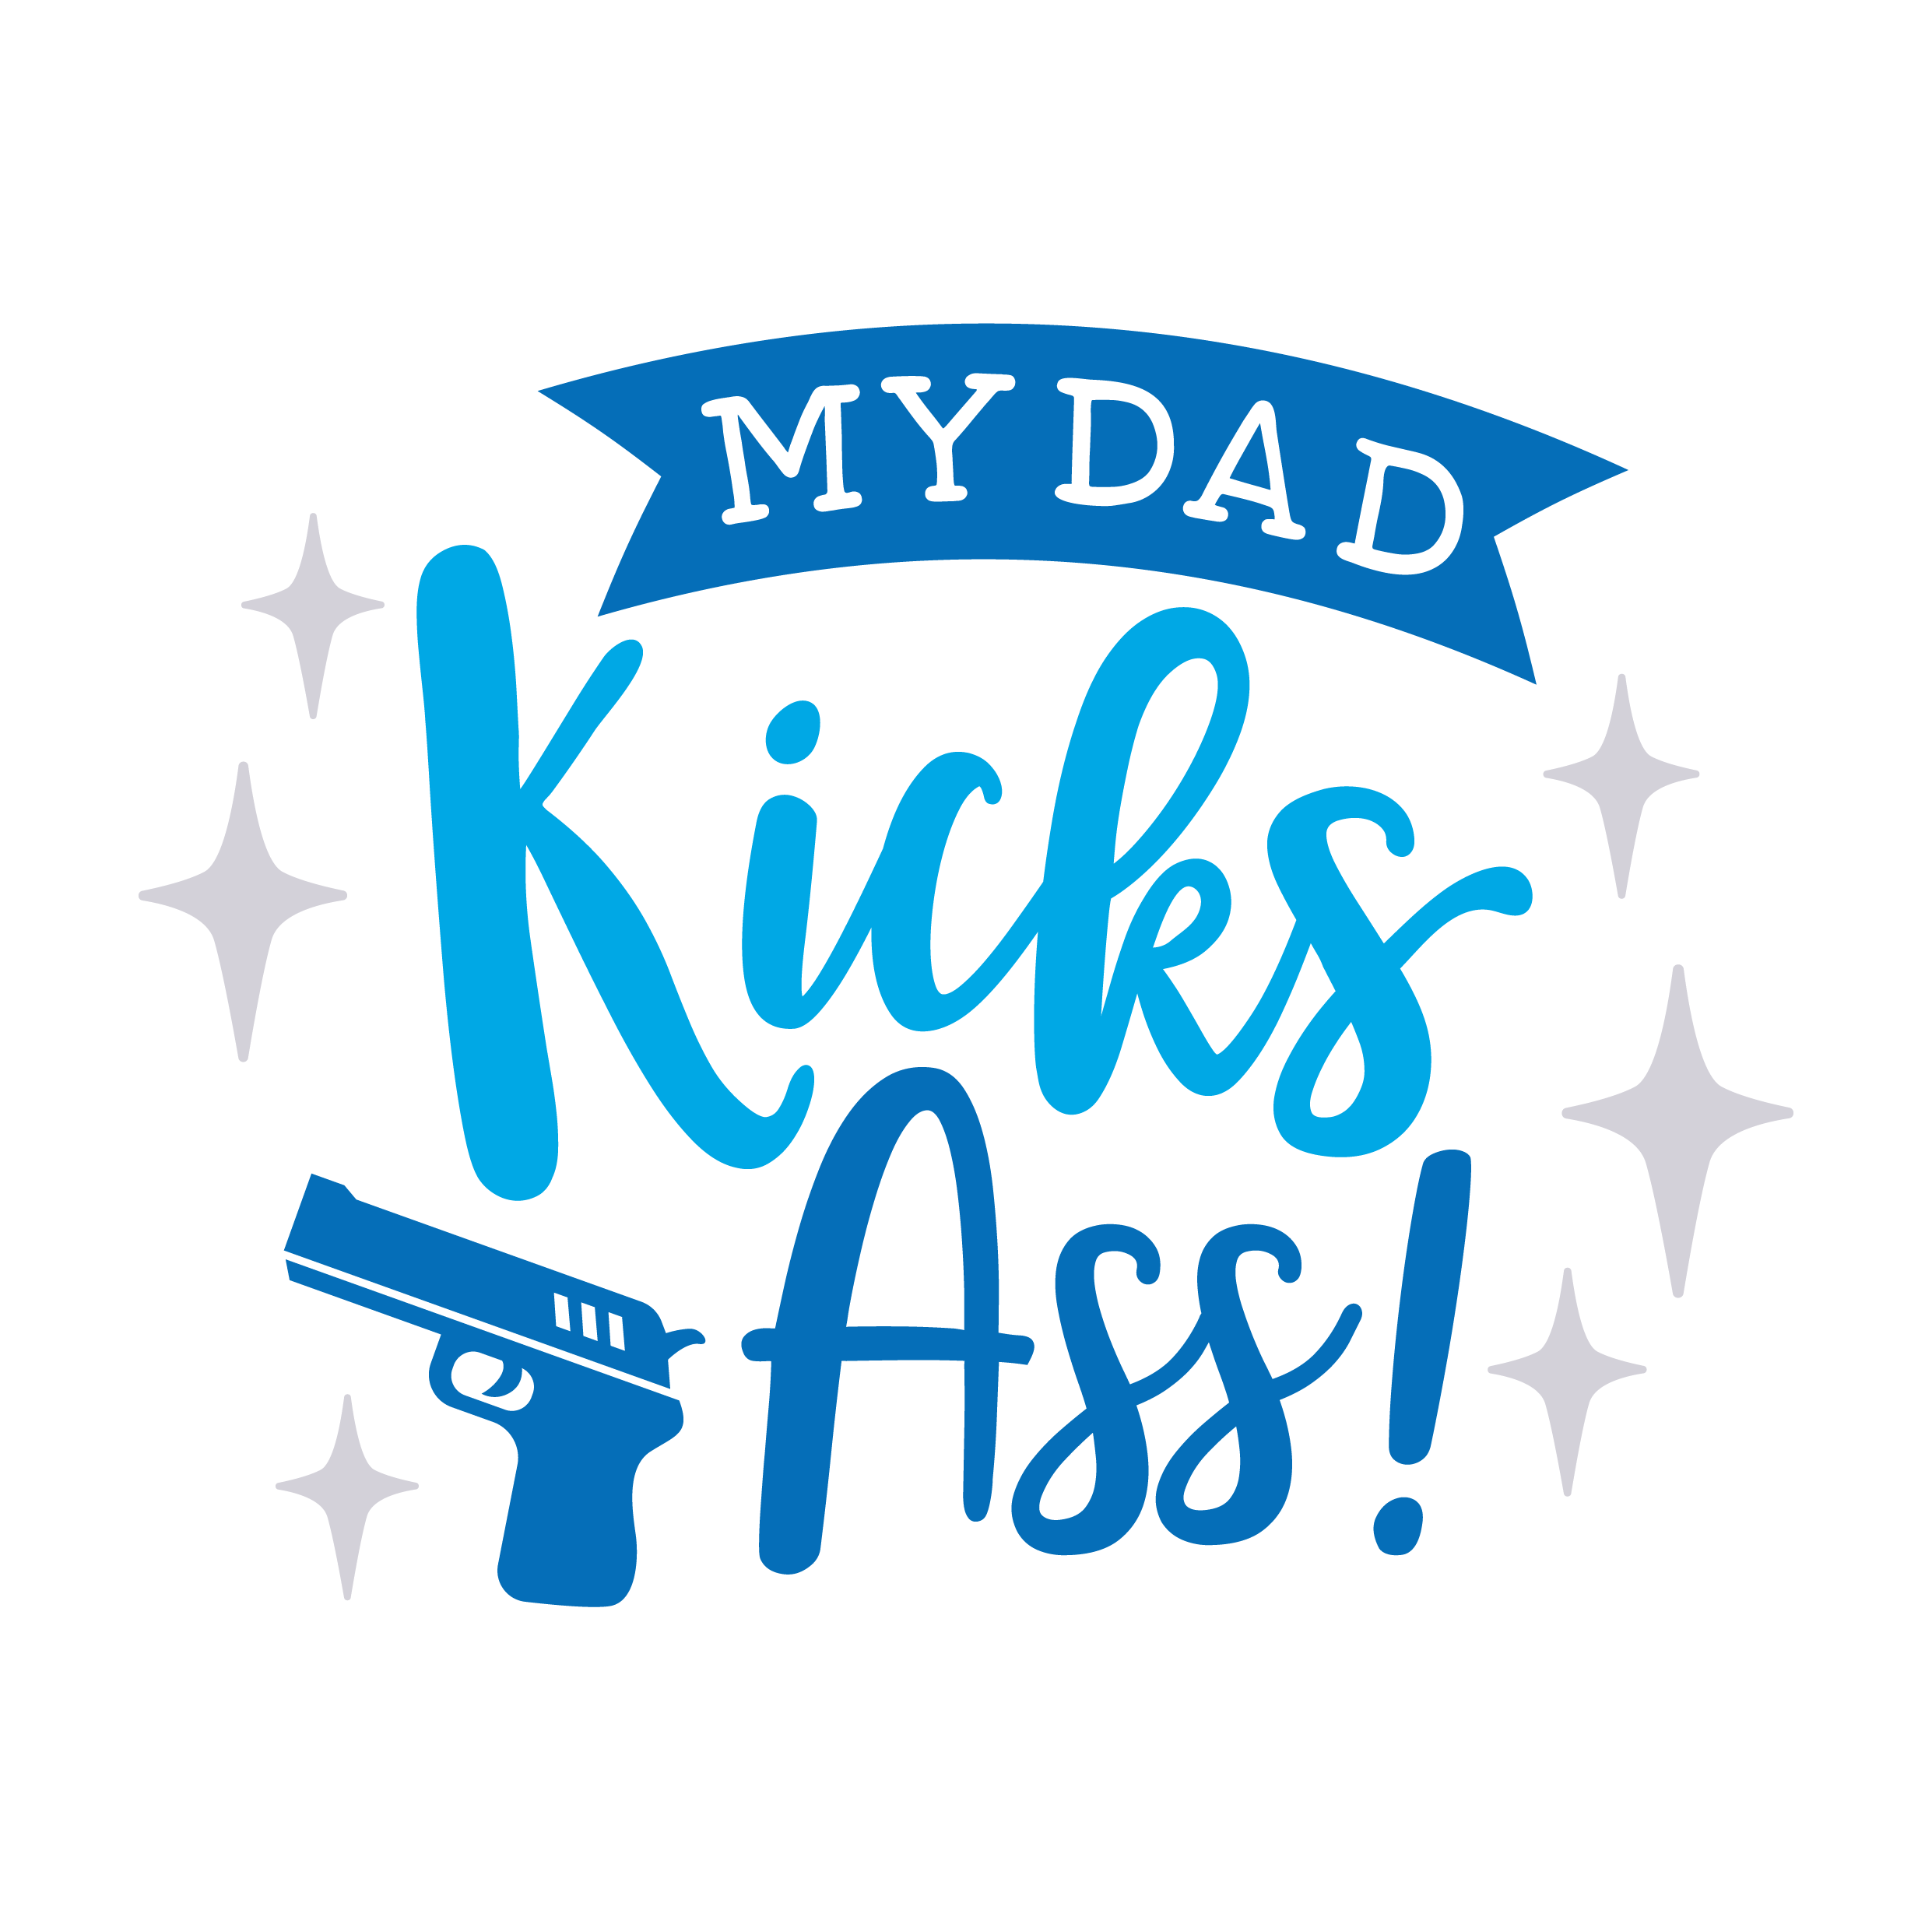 My dad kicks ass 2